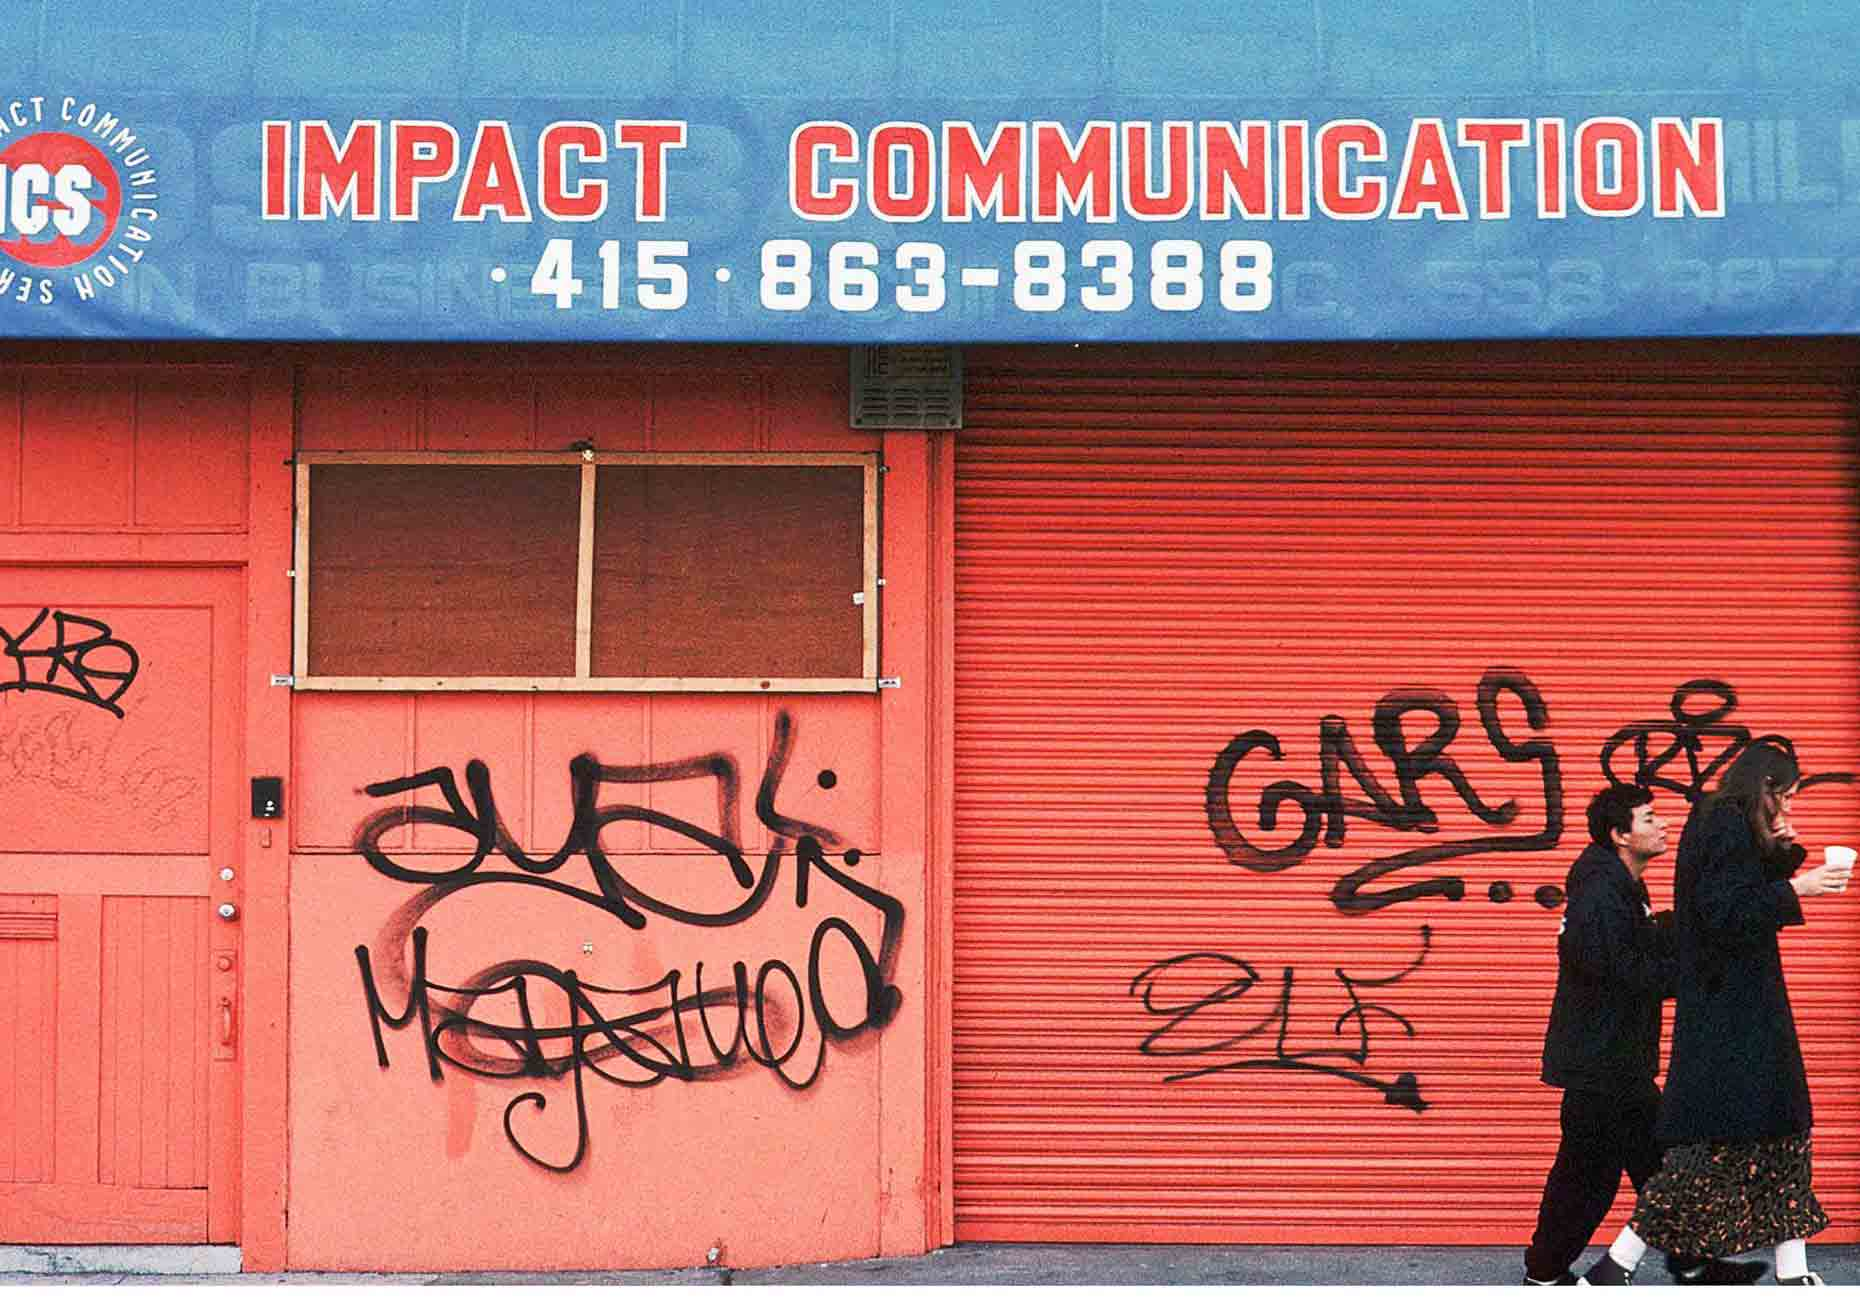 PAR_PhotoReporters_Impact-communications-graffiti_San-Francisco